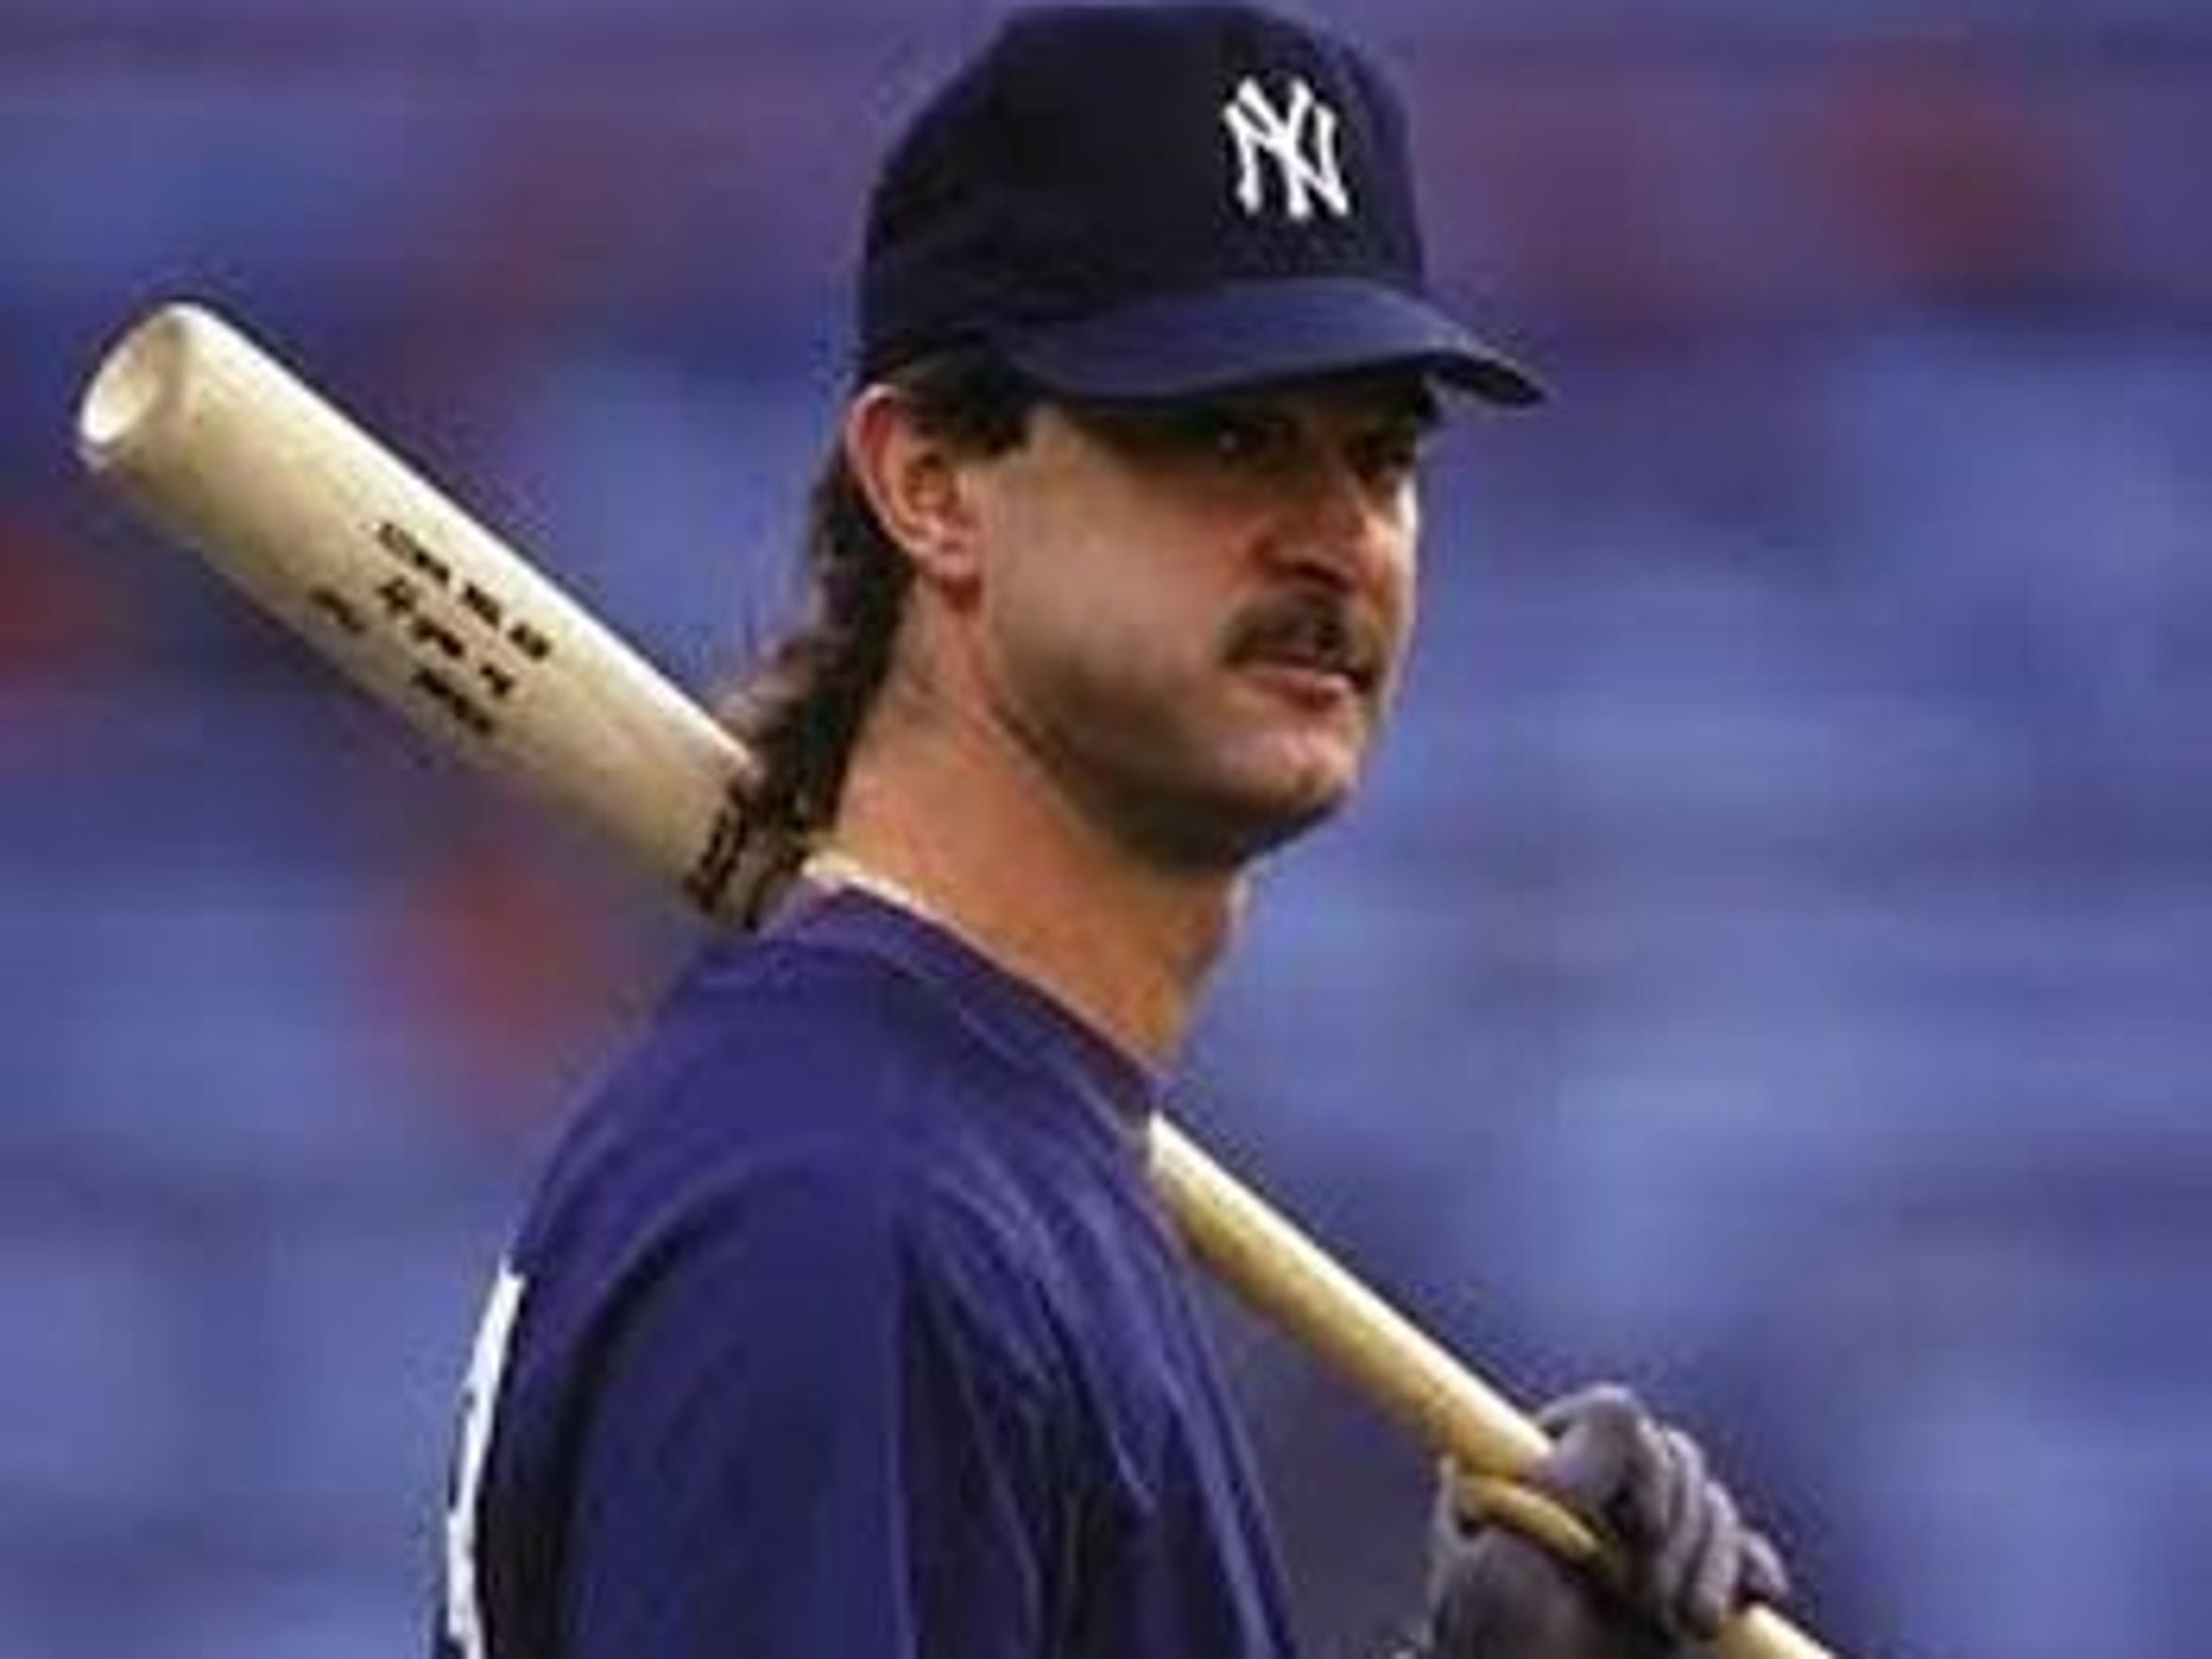 Don Mattingly is seen with facial hair when he was